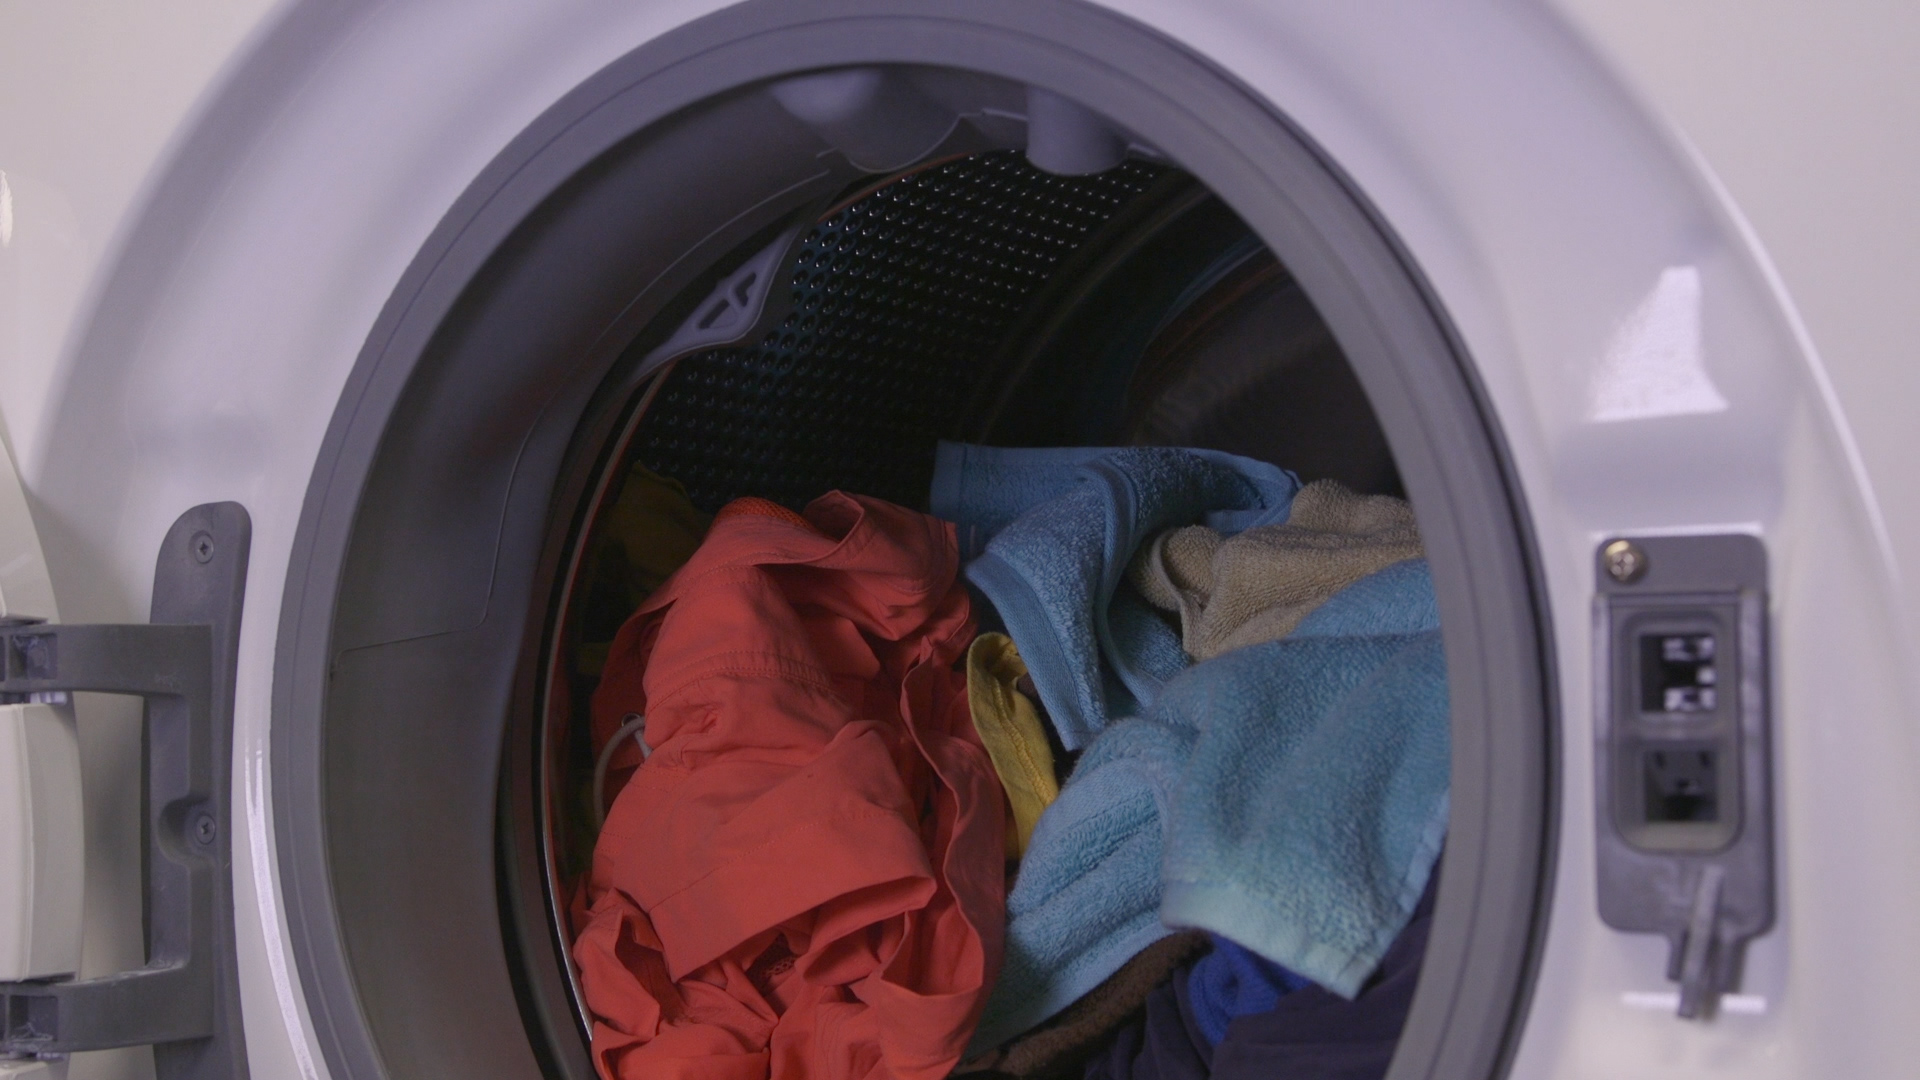 Washing Machine With Clothes ~ How to do laundry without ruining your clothes consumer